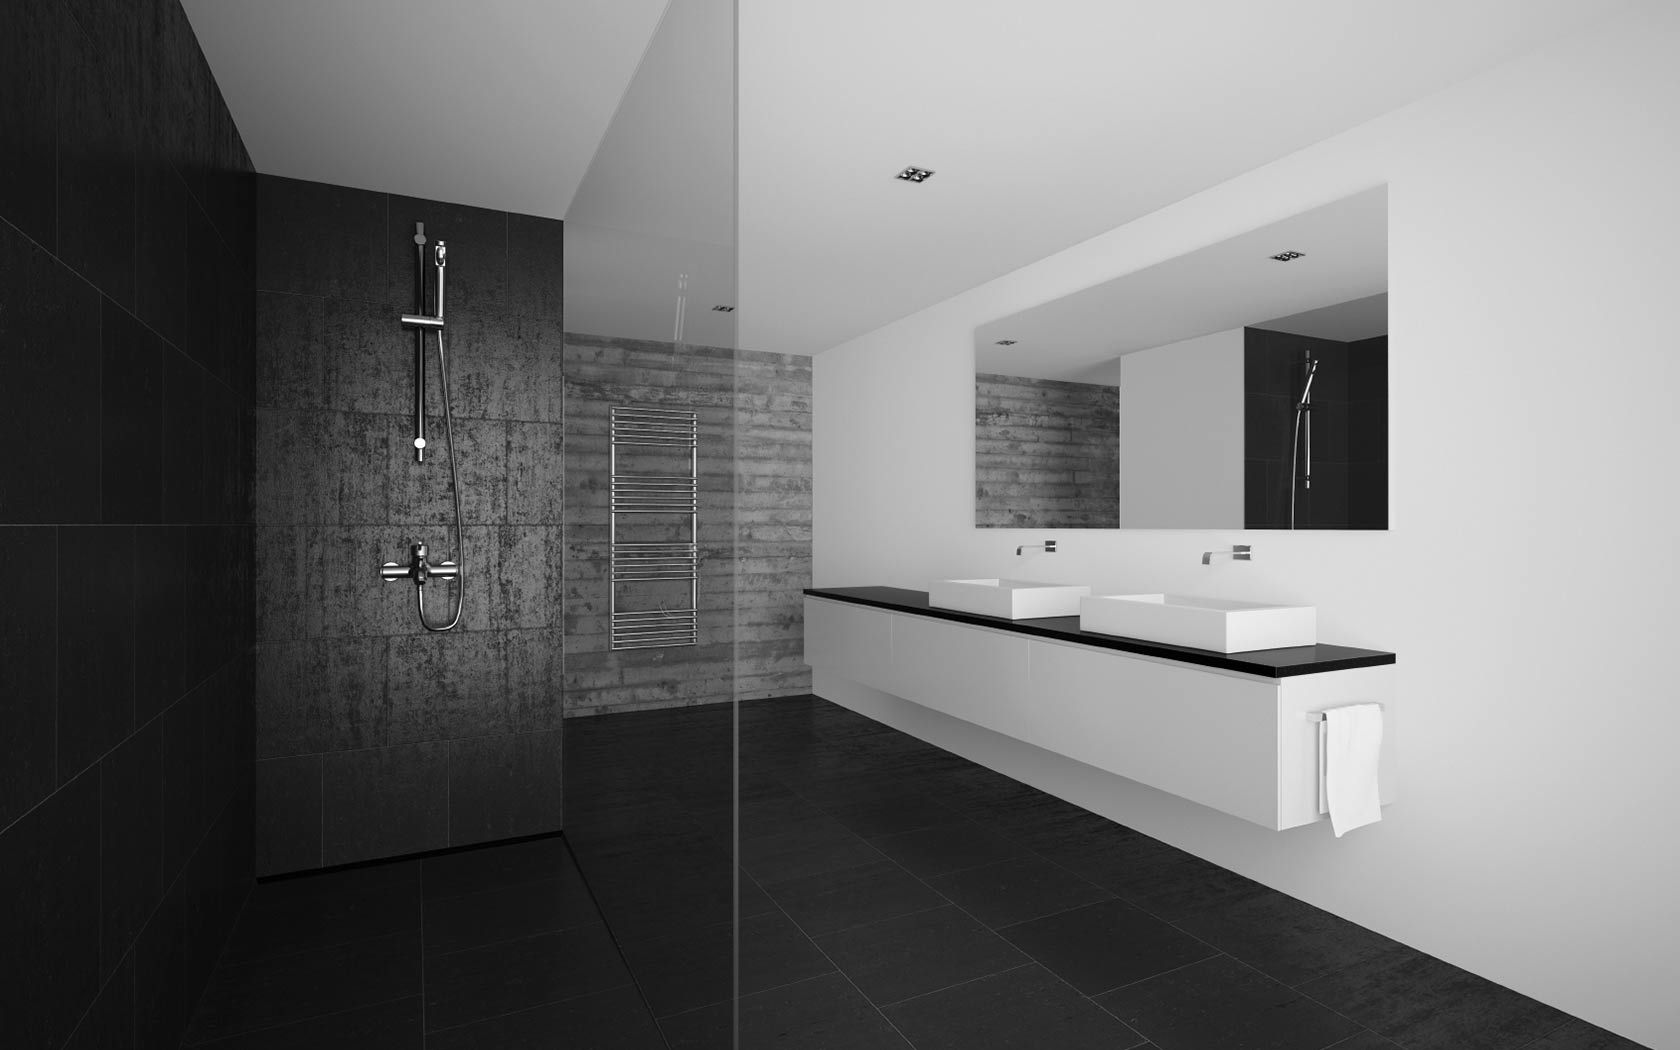 elegant eco friendly black bathroom design ideas amazing black bathroom design ideas bathroom style with black and white themes color feat stainless